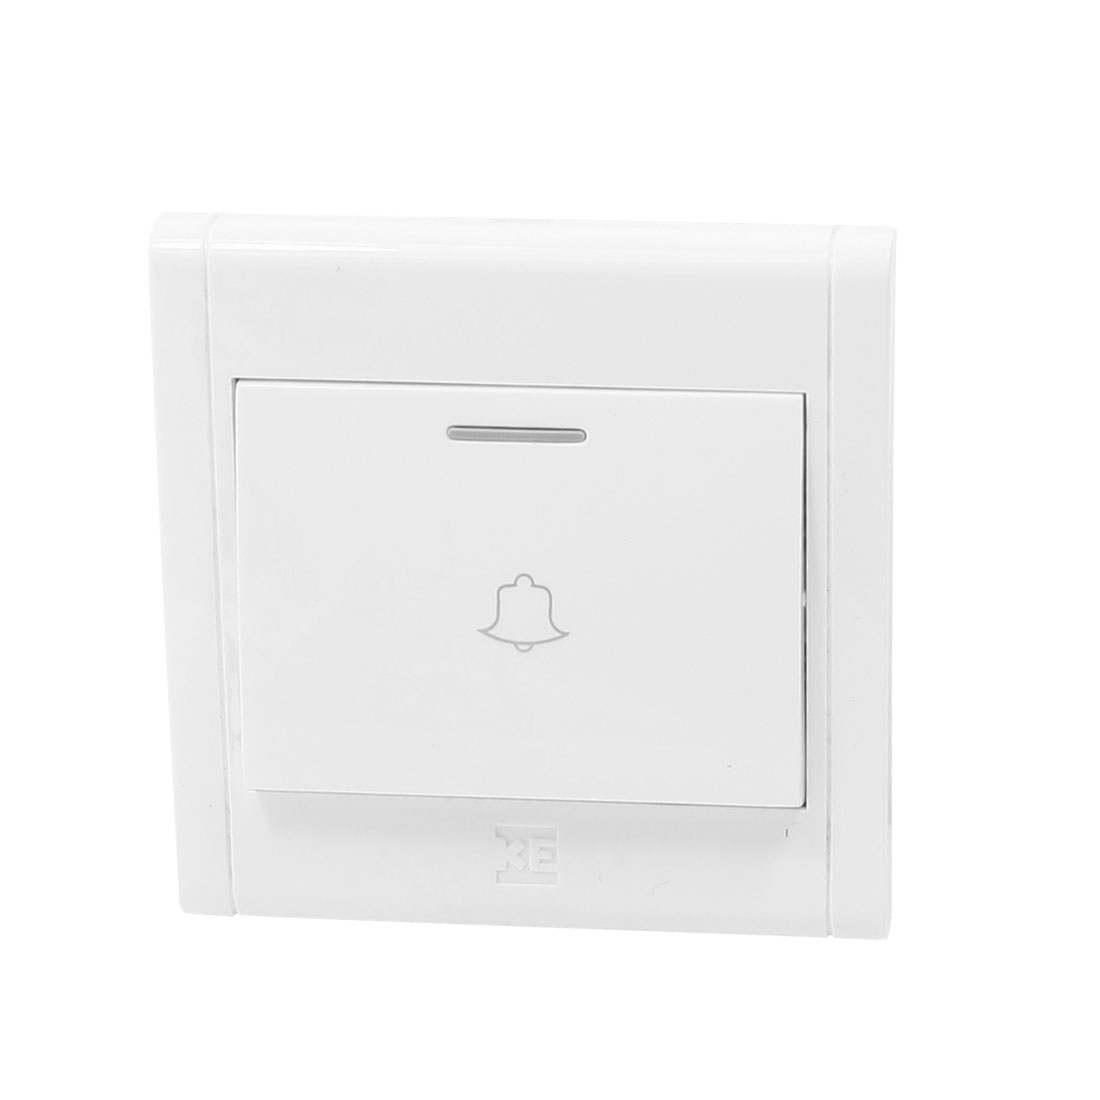 Bell Printed Square Shaped White 250V 16A Wall Mount Doorbell Switch Plate